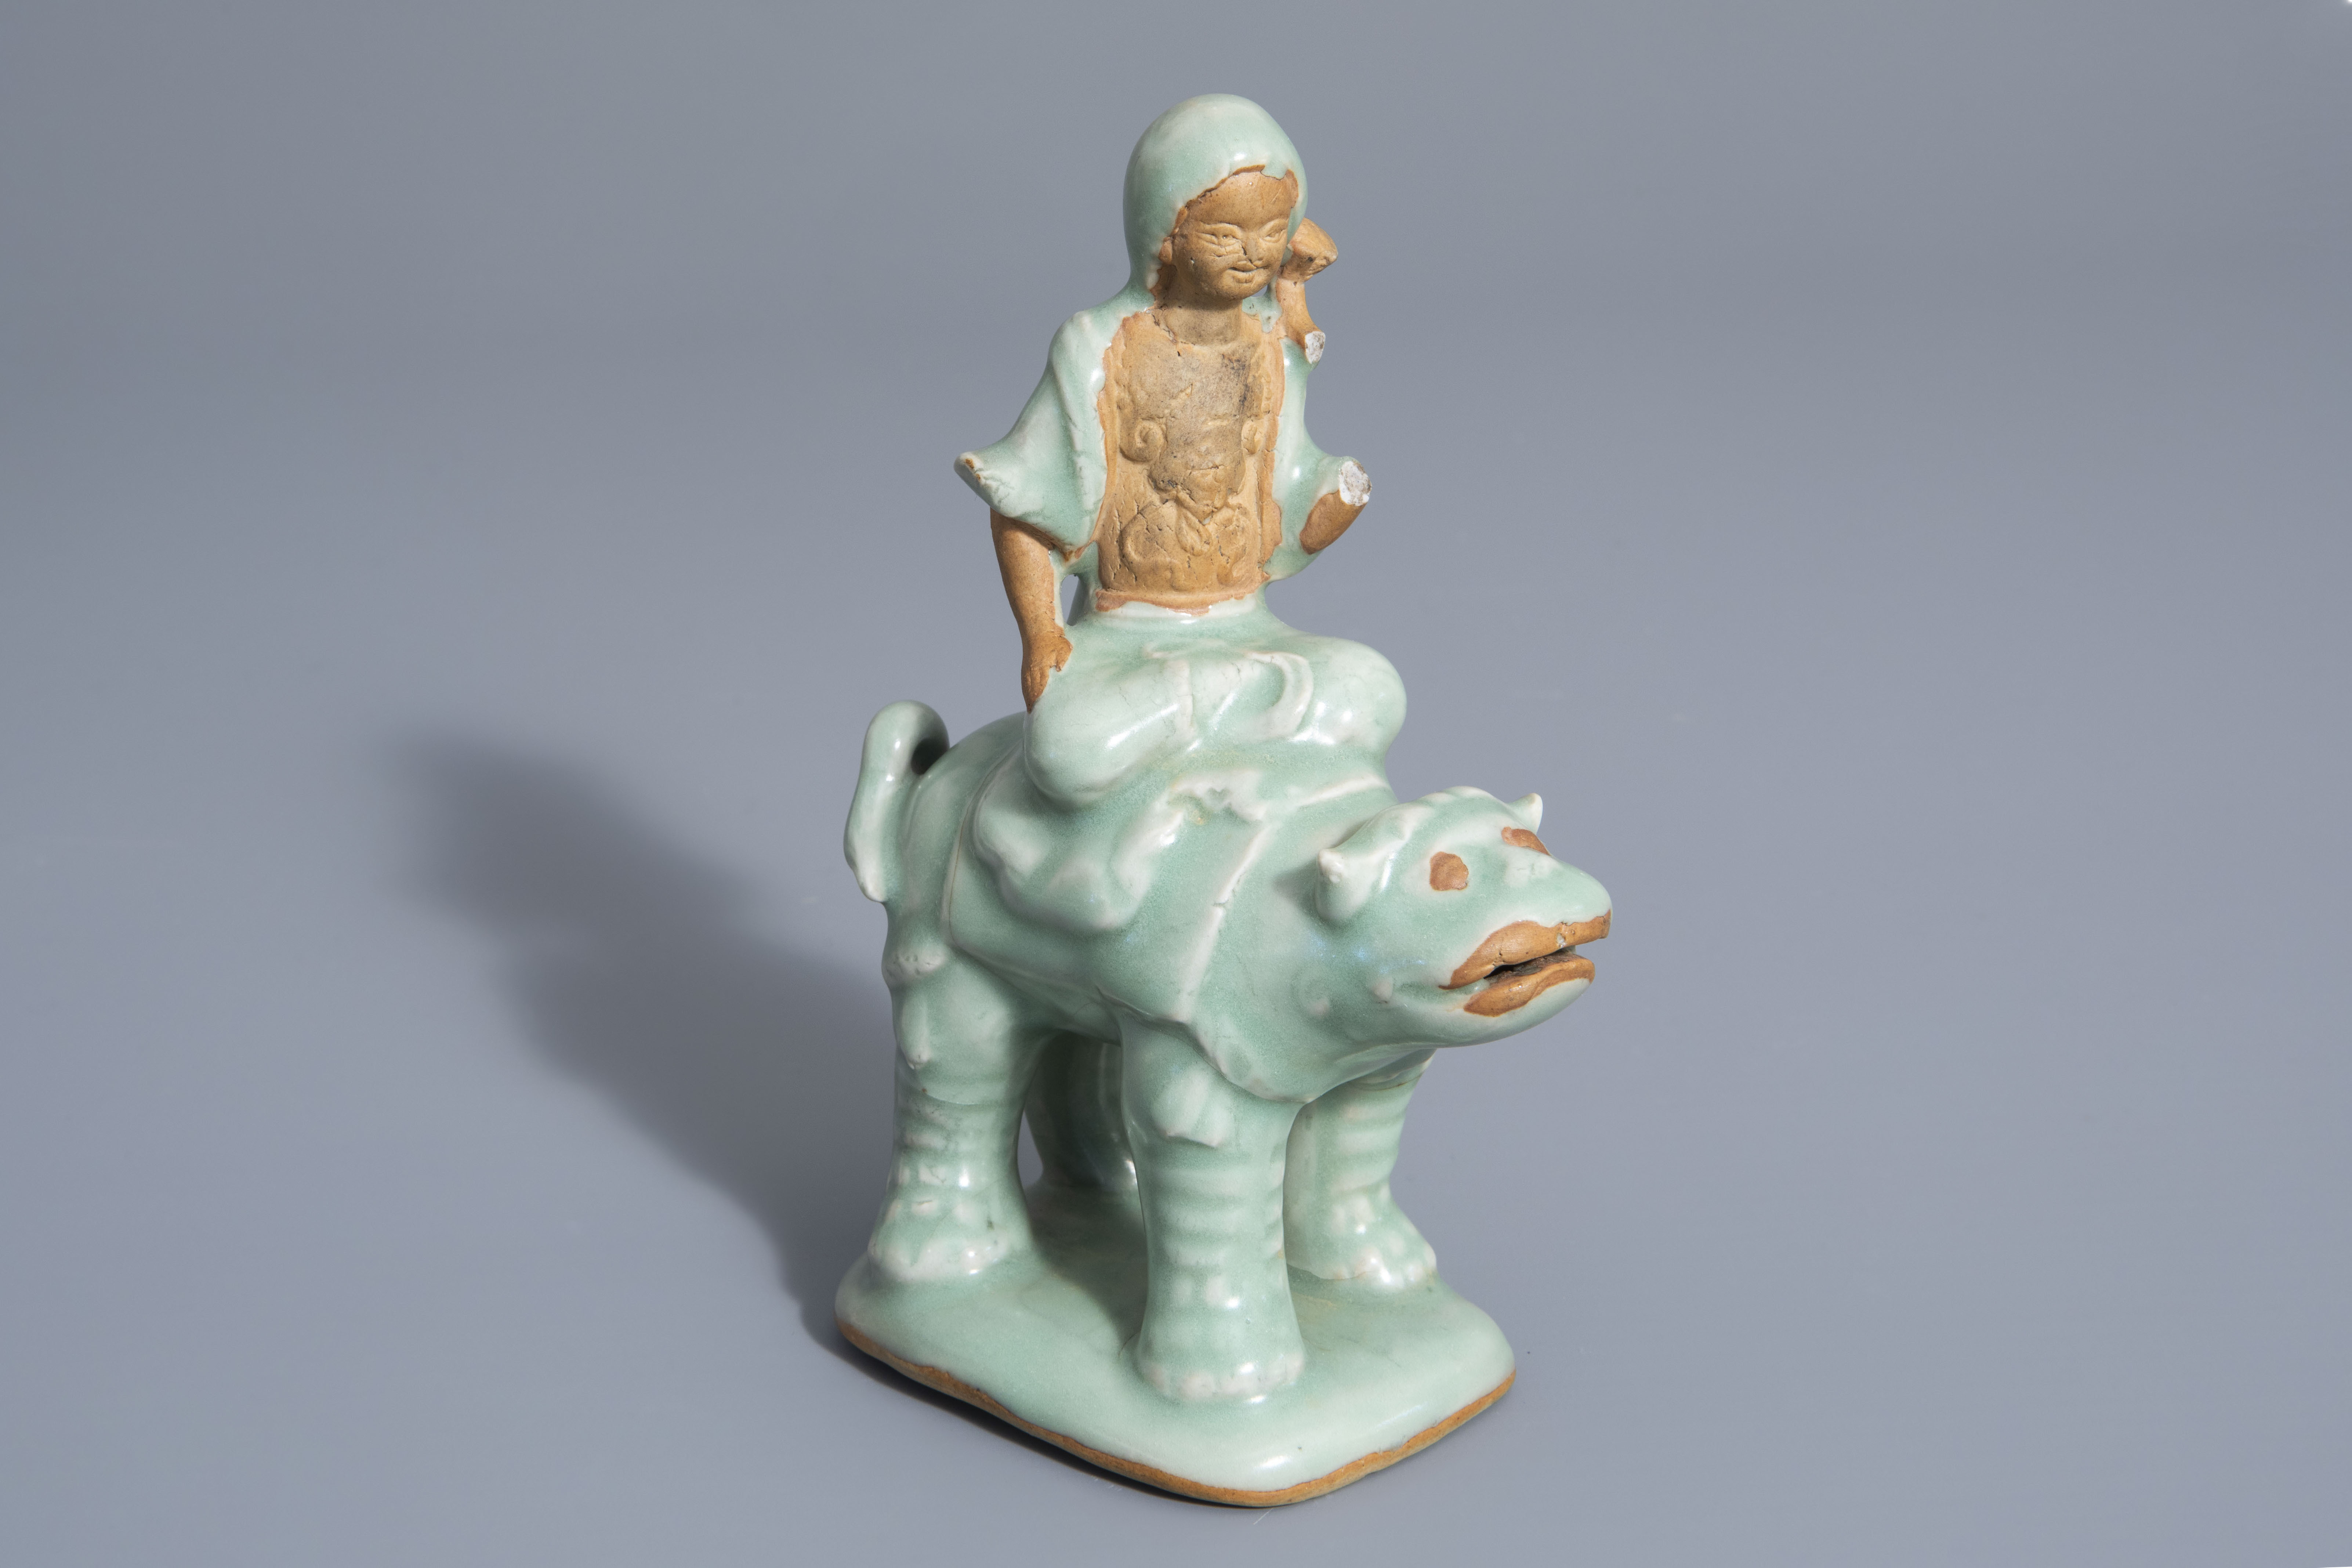 A Chinese celadon glazed group, 19th/20th C.